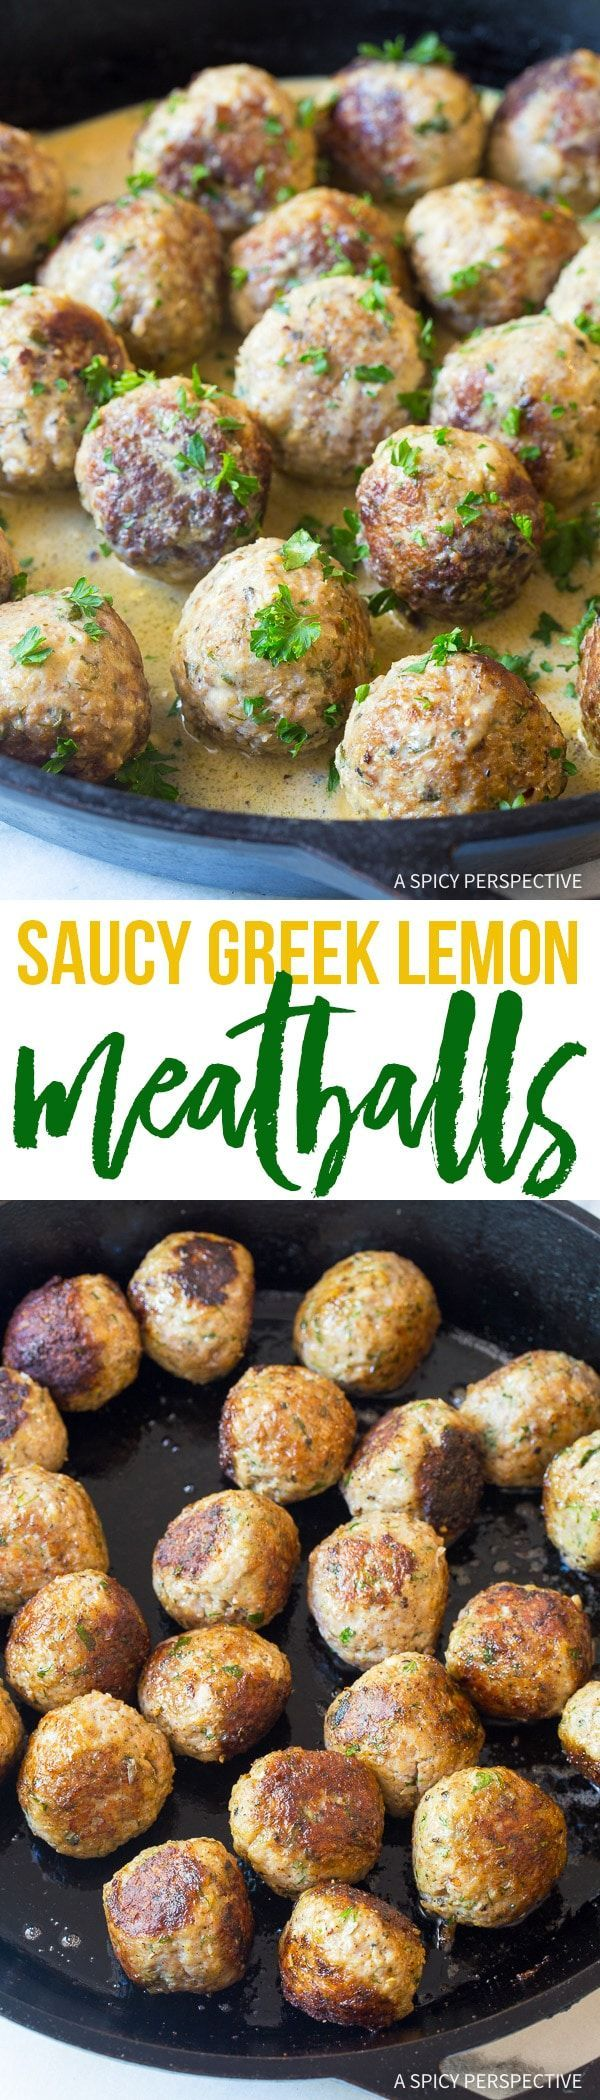 Saucy Greek Lemon Meatballs (Keftedes) Recipe – A tangy meatball recipe with bold flavors. The meatballs simmer in a lemon sauce that is  fabulous over pasta or rice!